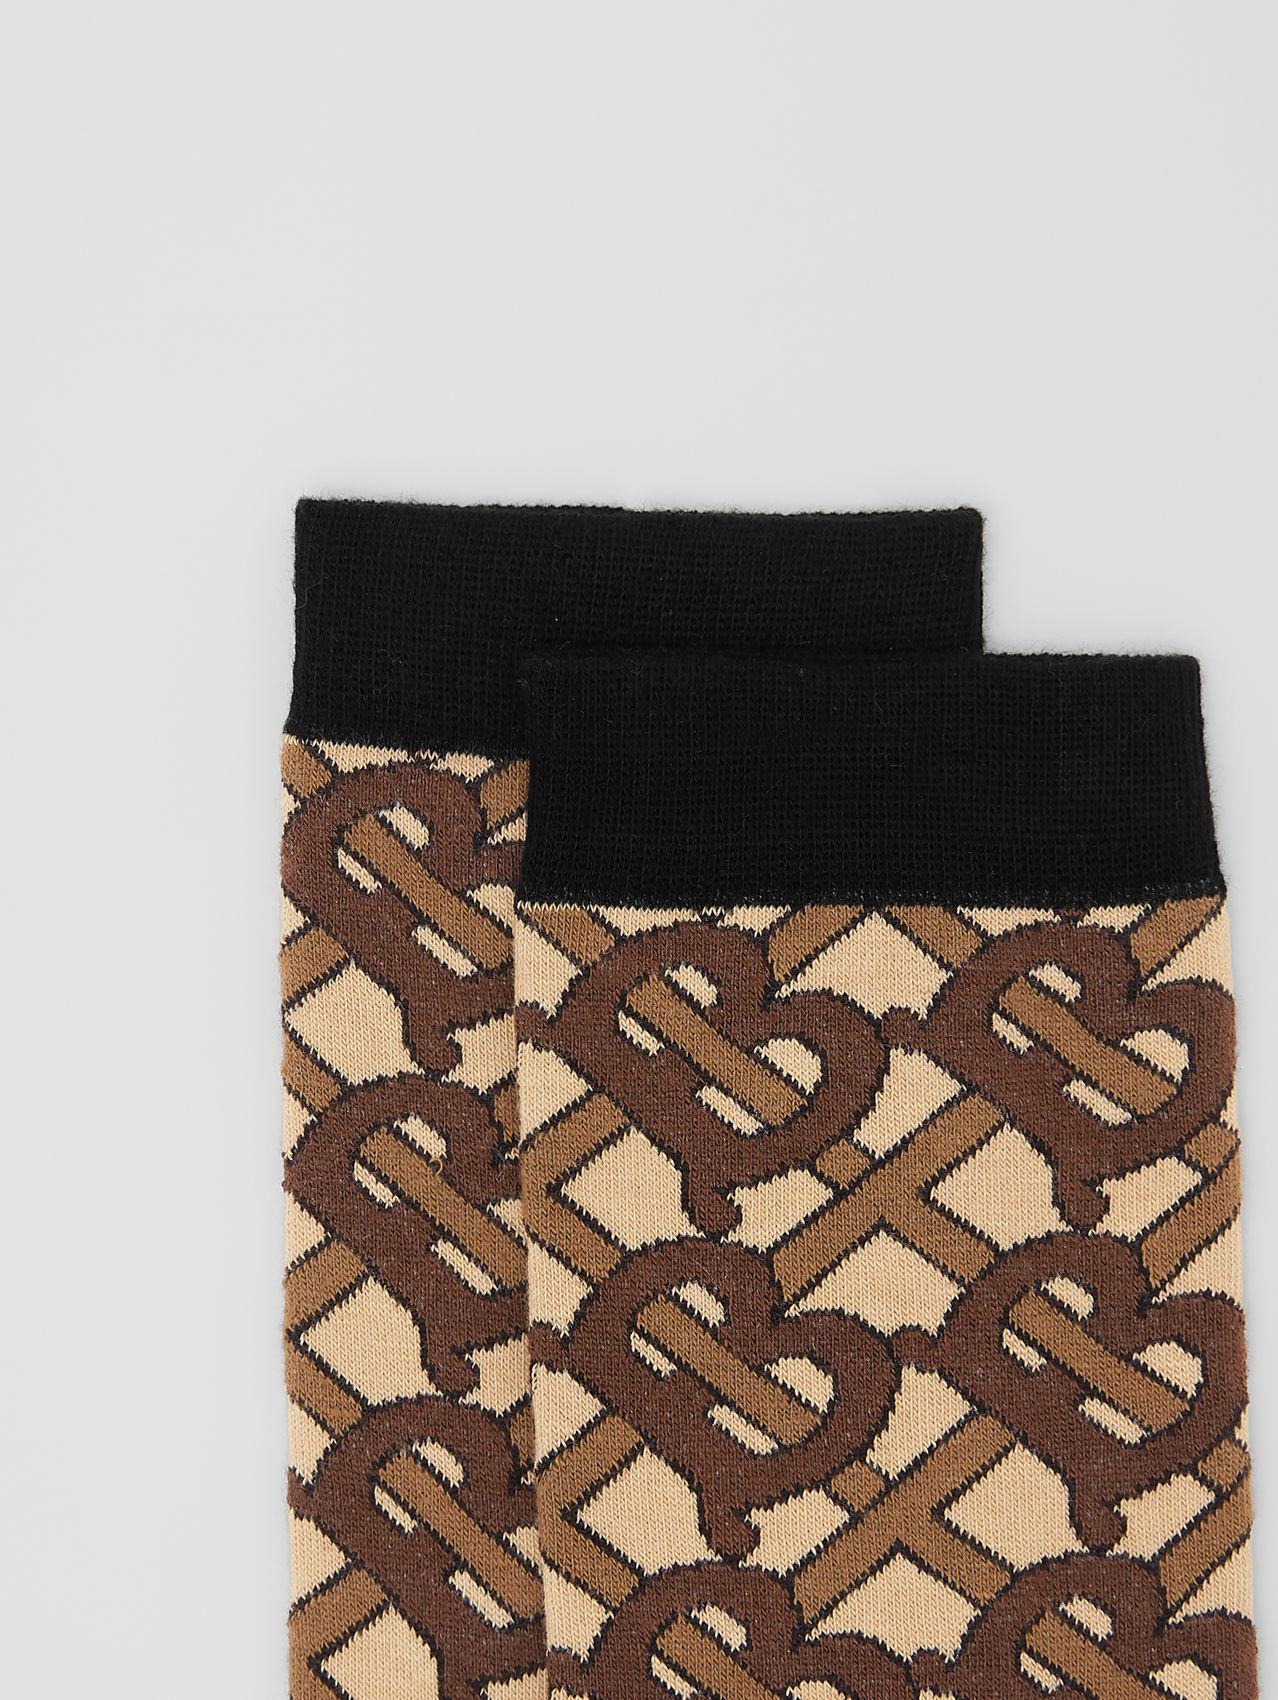 Monogram Intarsia Cotton Blend Socks in Bridle Brown